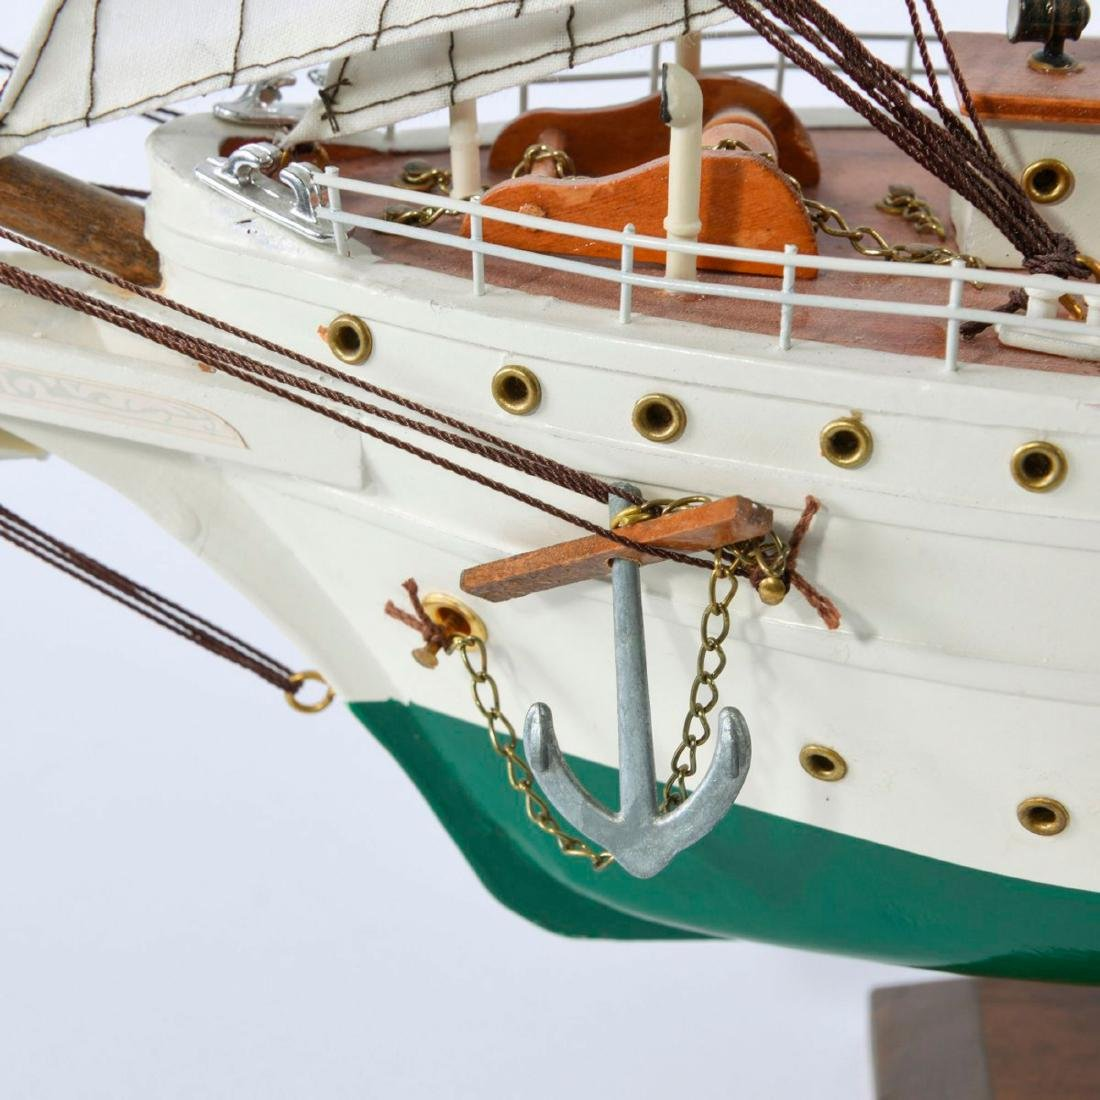 Model four-masted schooner 'J.S. Elcano' - 3